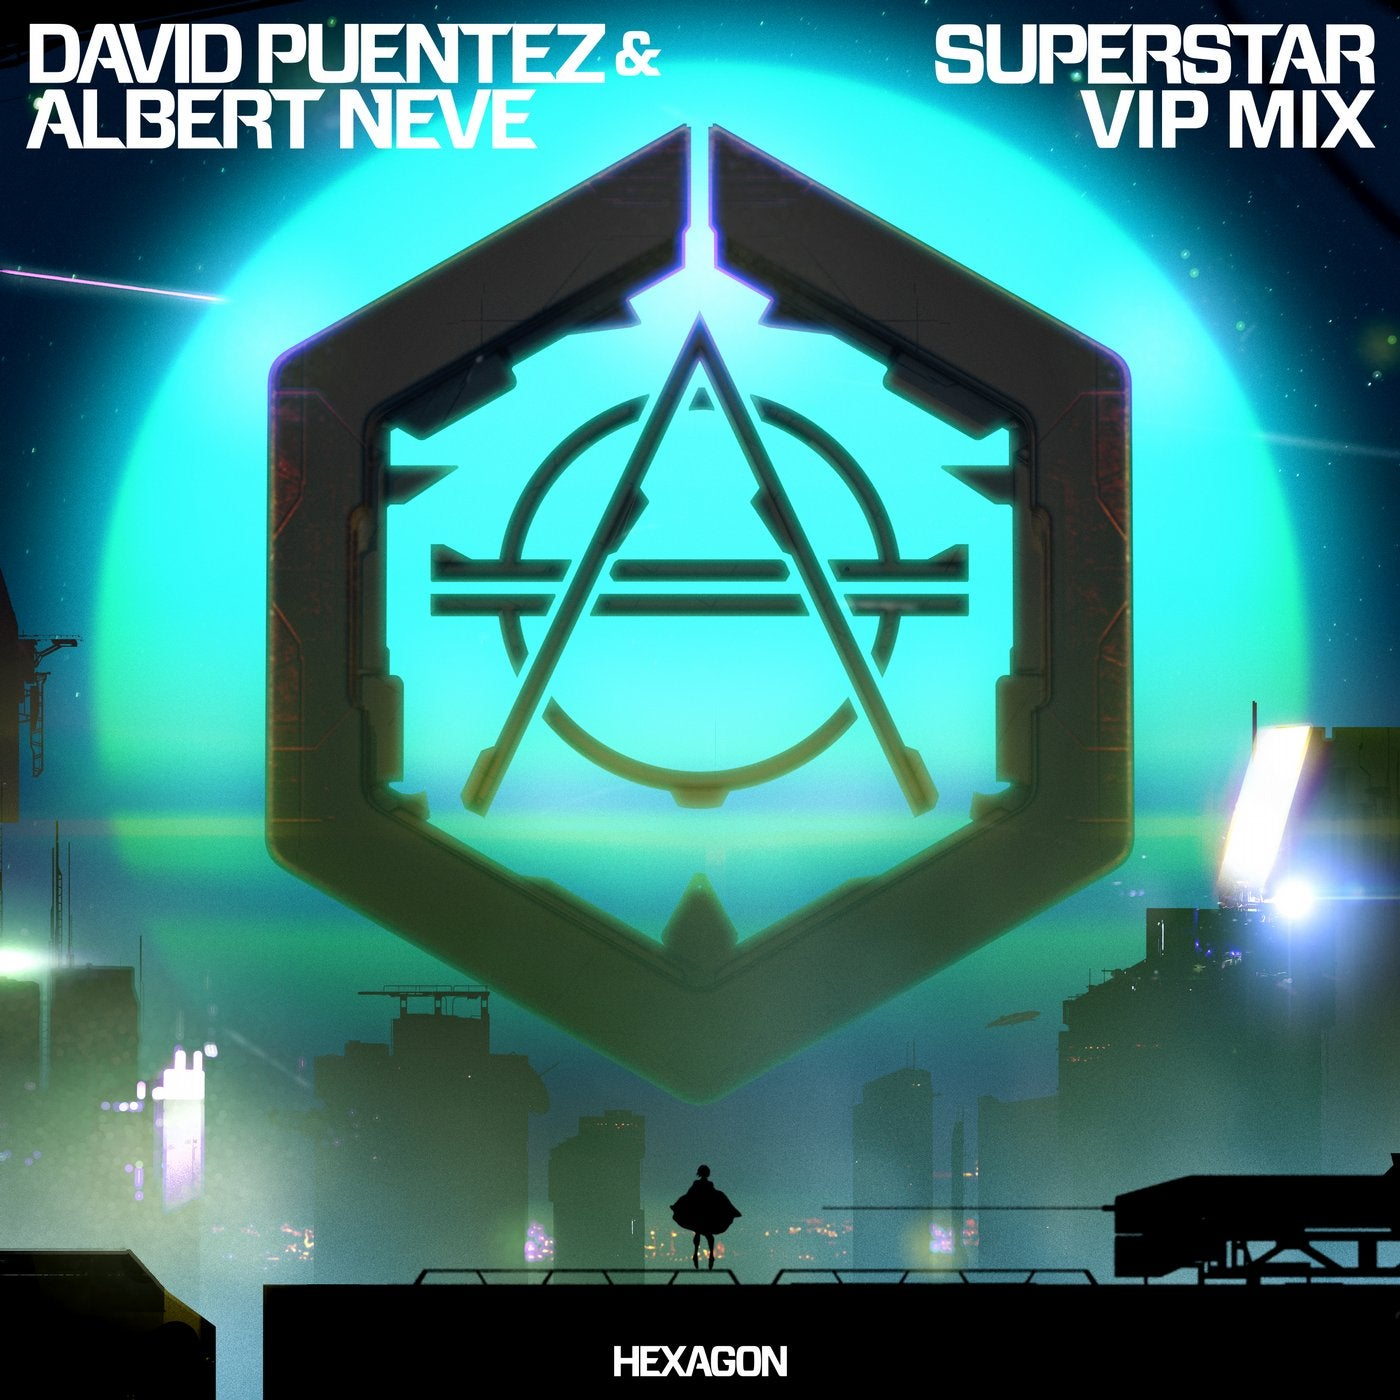 Superstar (VIP Mix Extended Version)